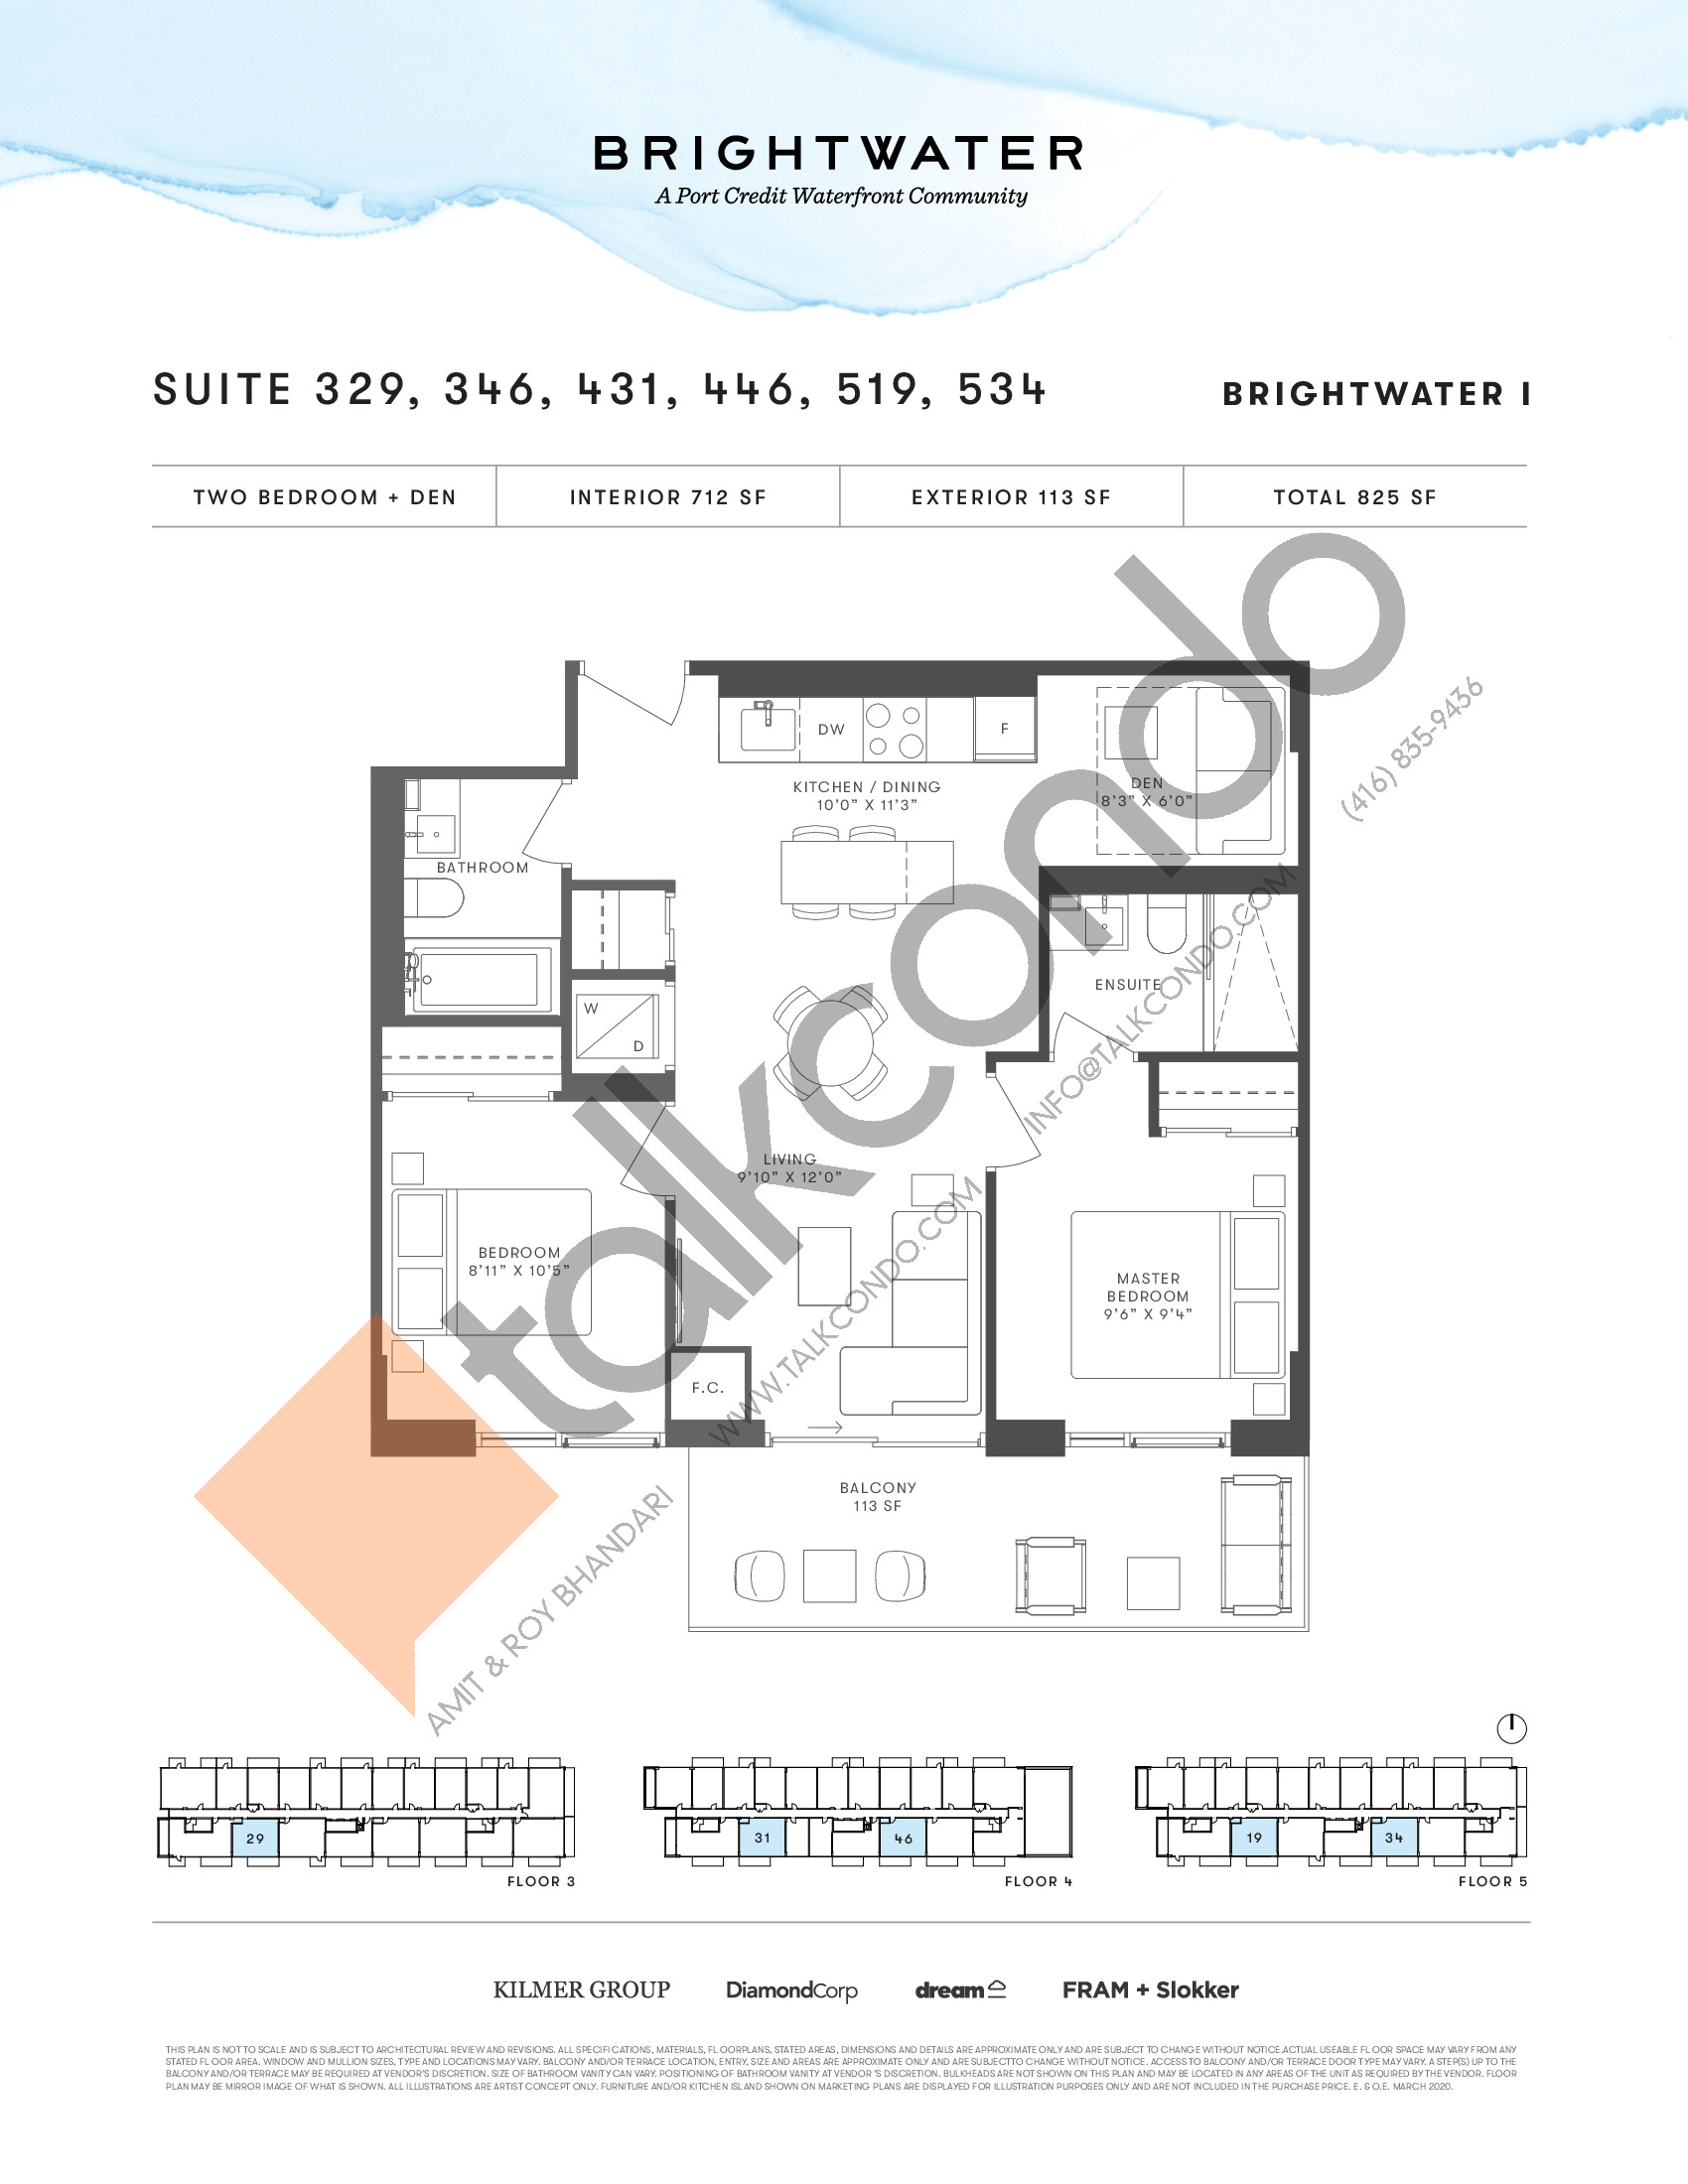 Suite 329, 346, 431, 446, 519, 534 Floor Plan at Brightwater I Condos - 712 sq.ft